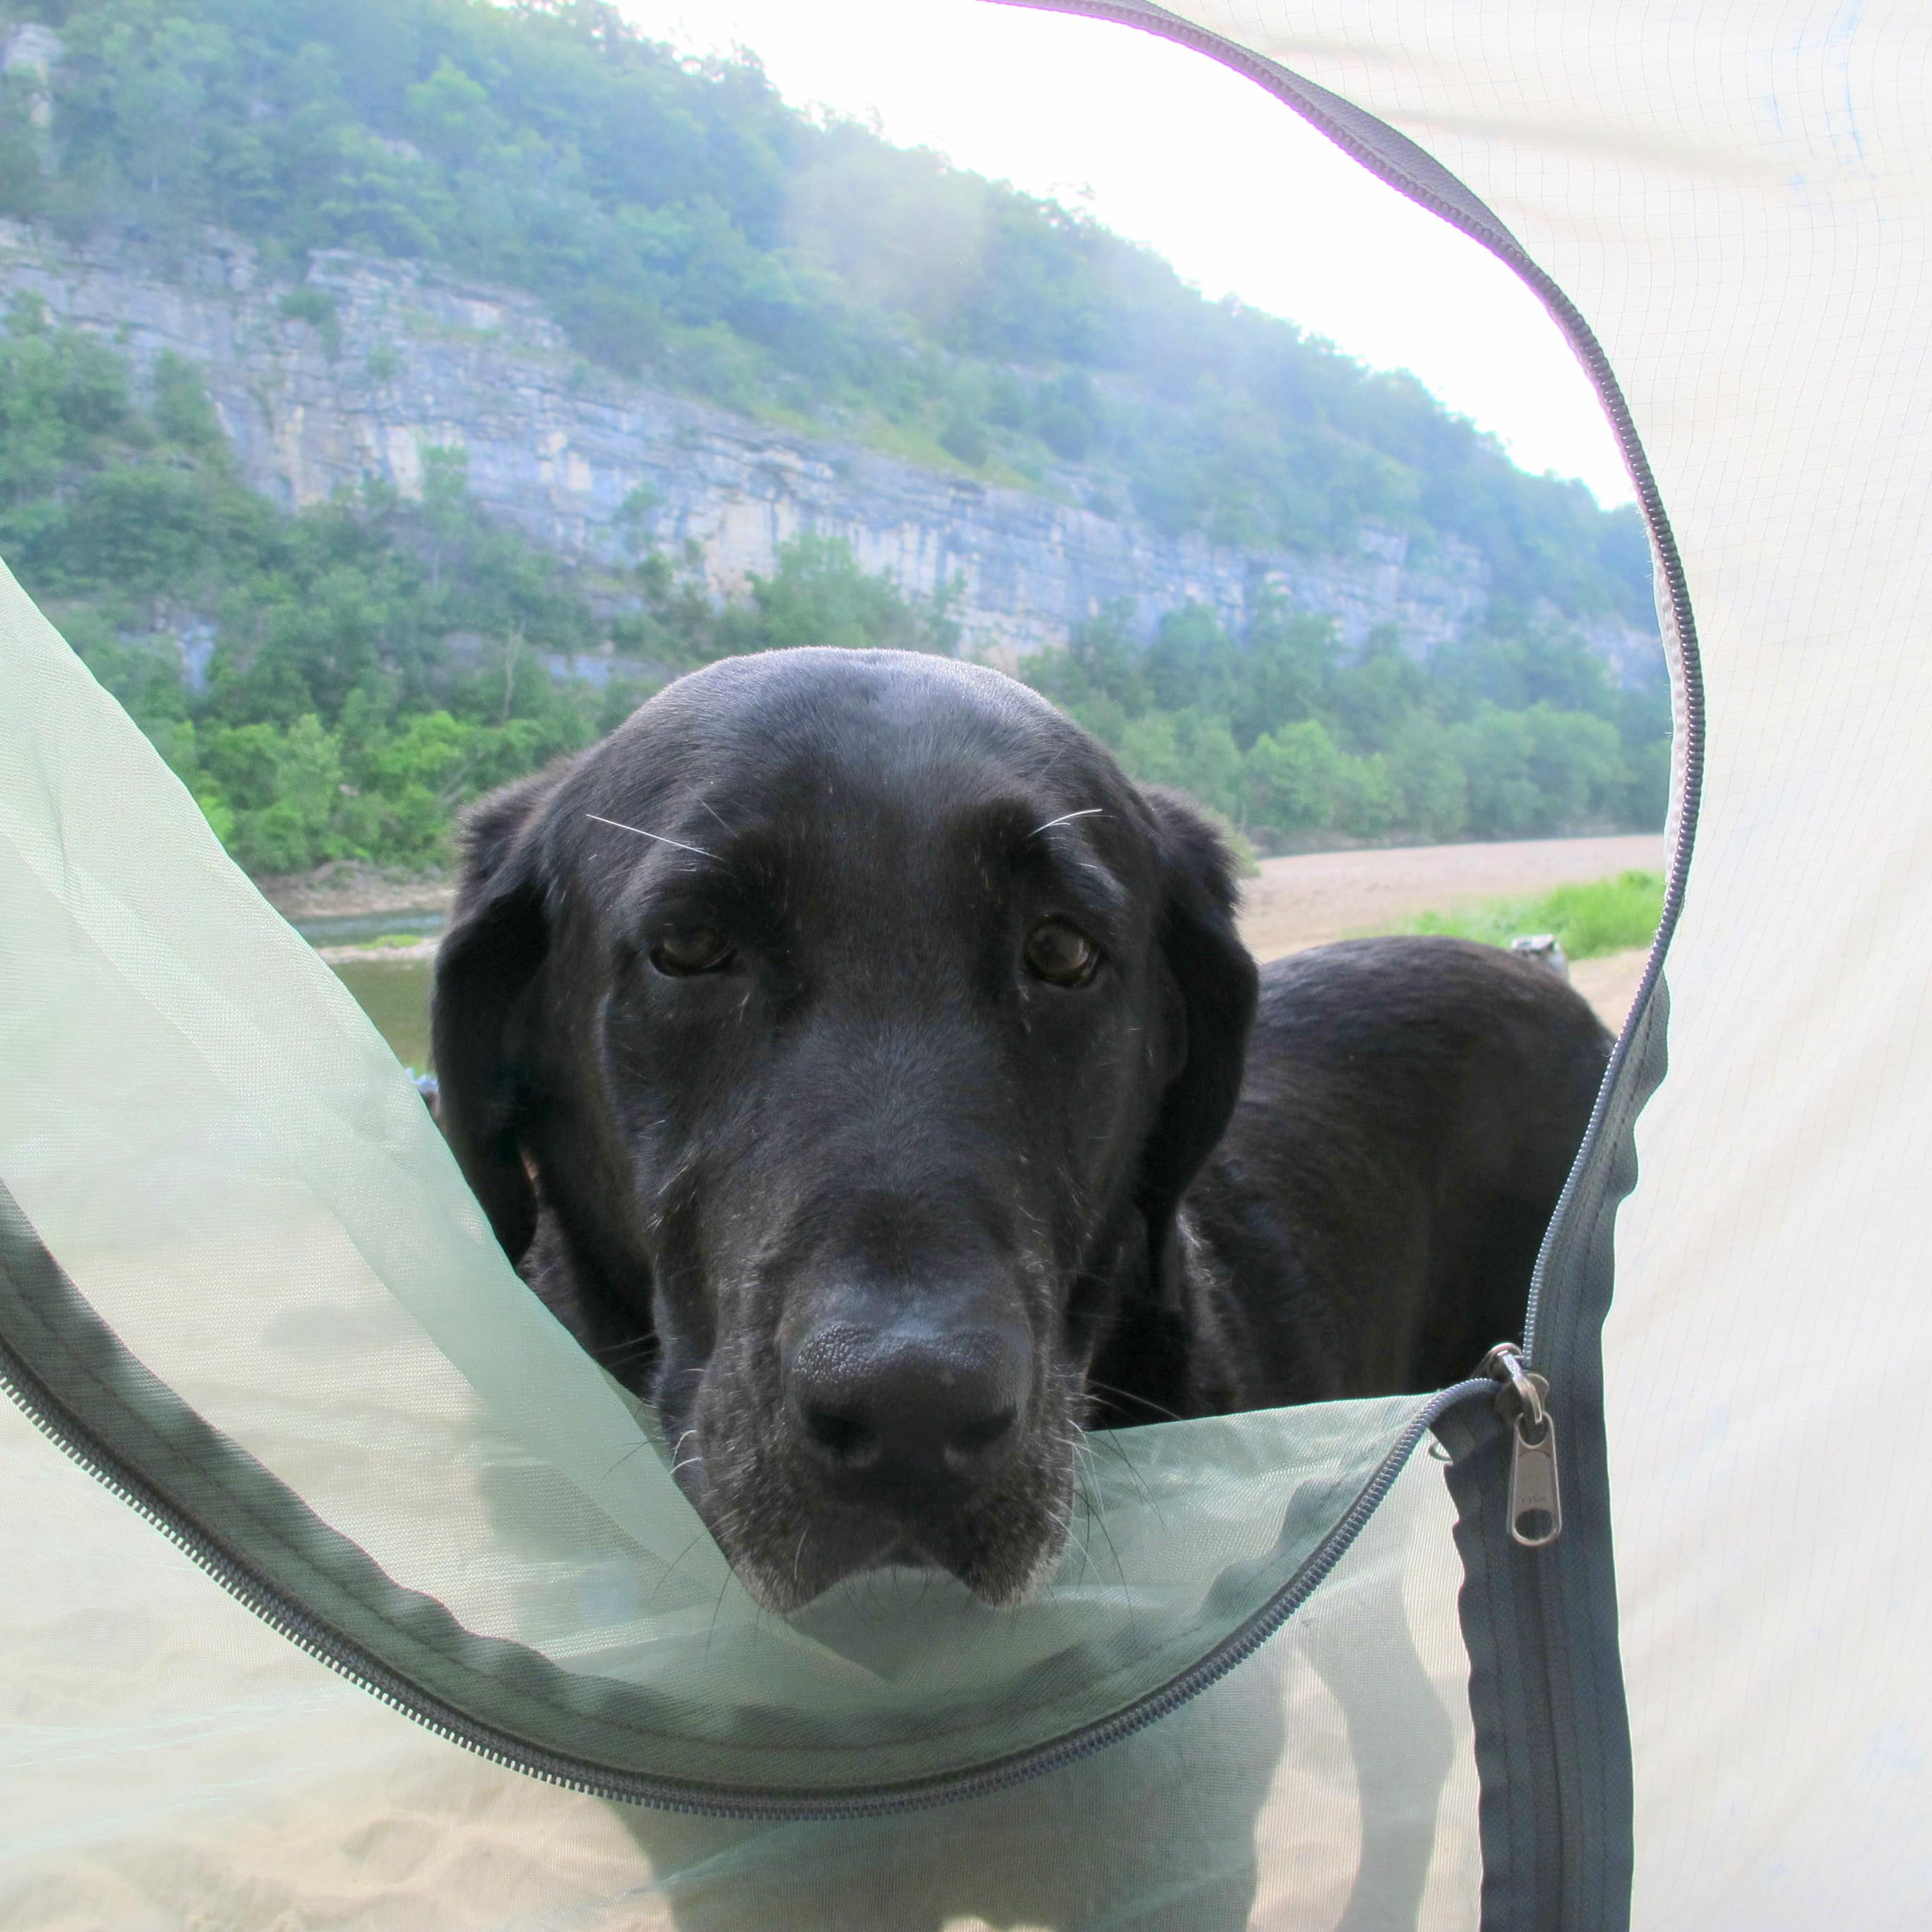 Dog peaking into tent